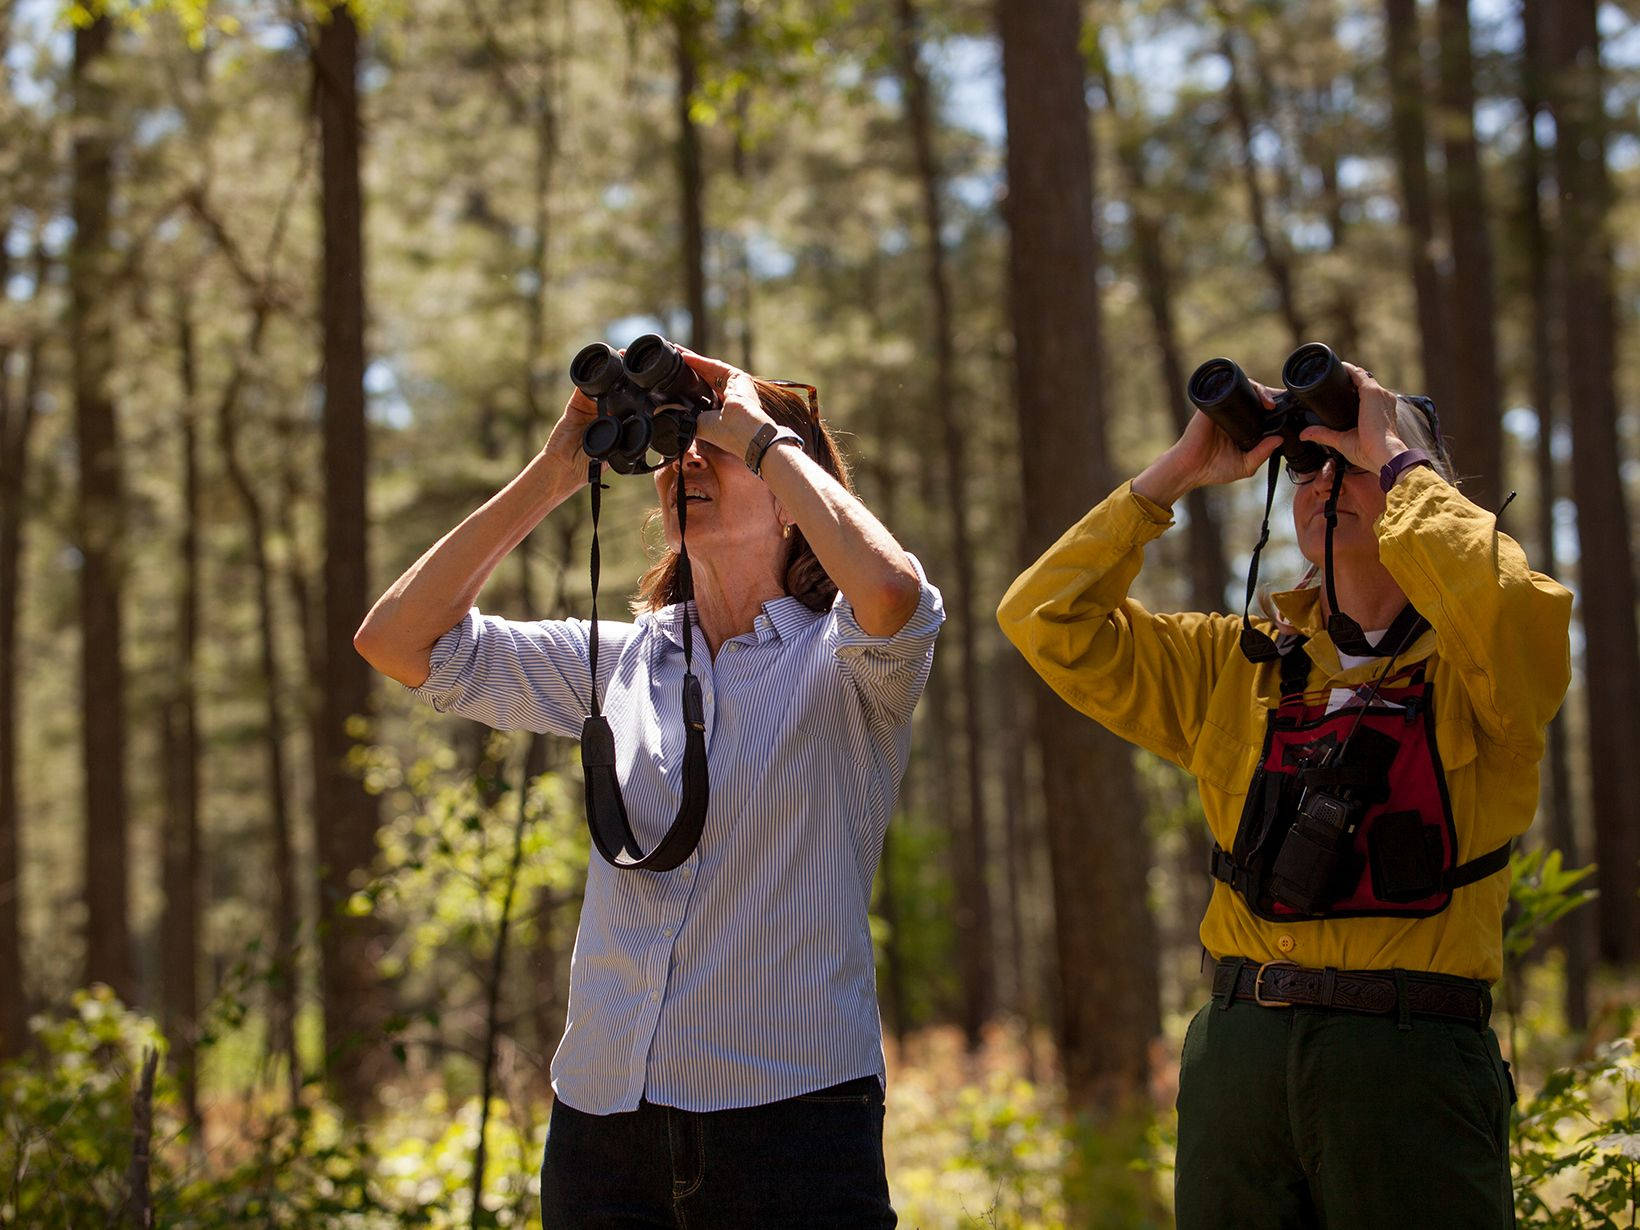 Two women stand together in a forest. They are each looking up through binoculars into the trees. Tall pine trees rise behind them.